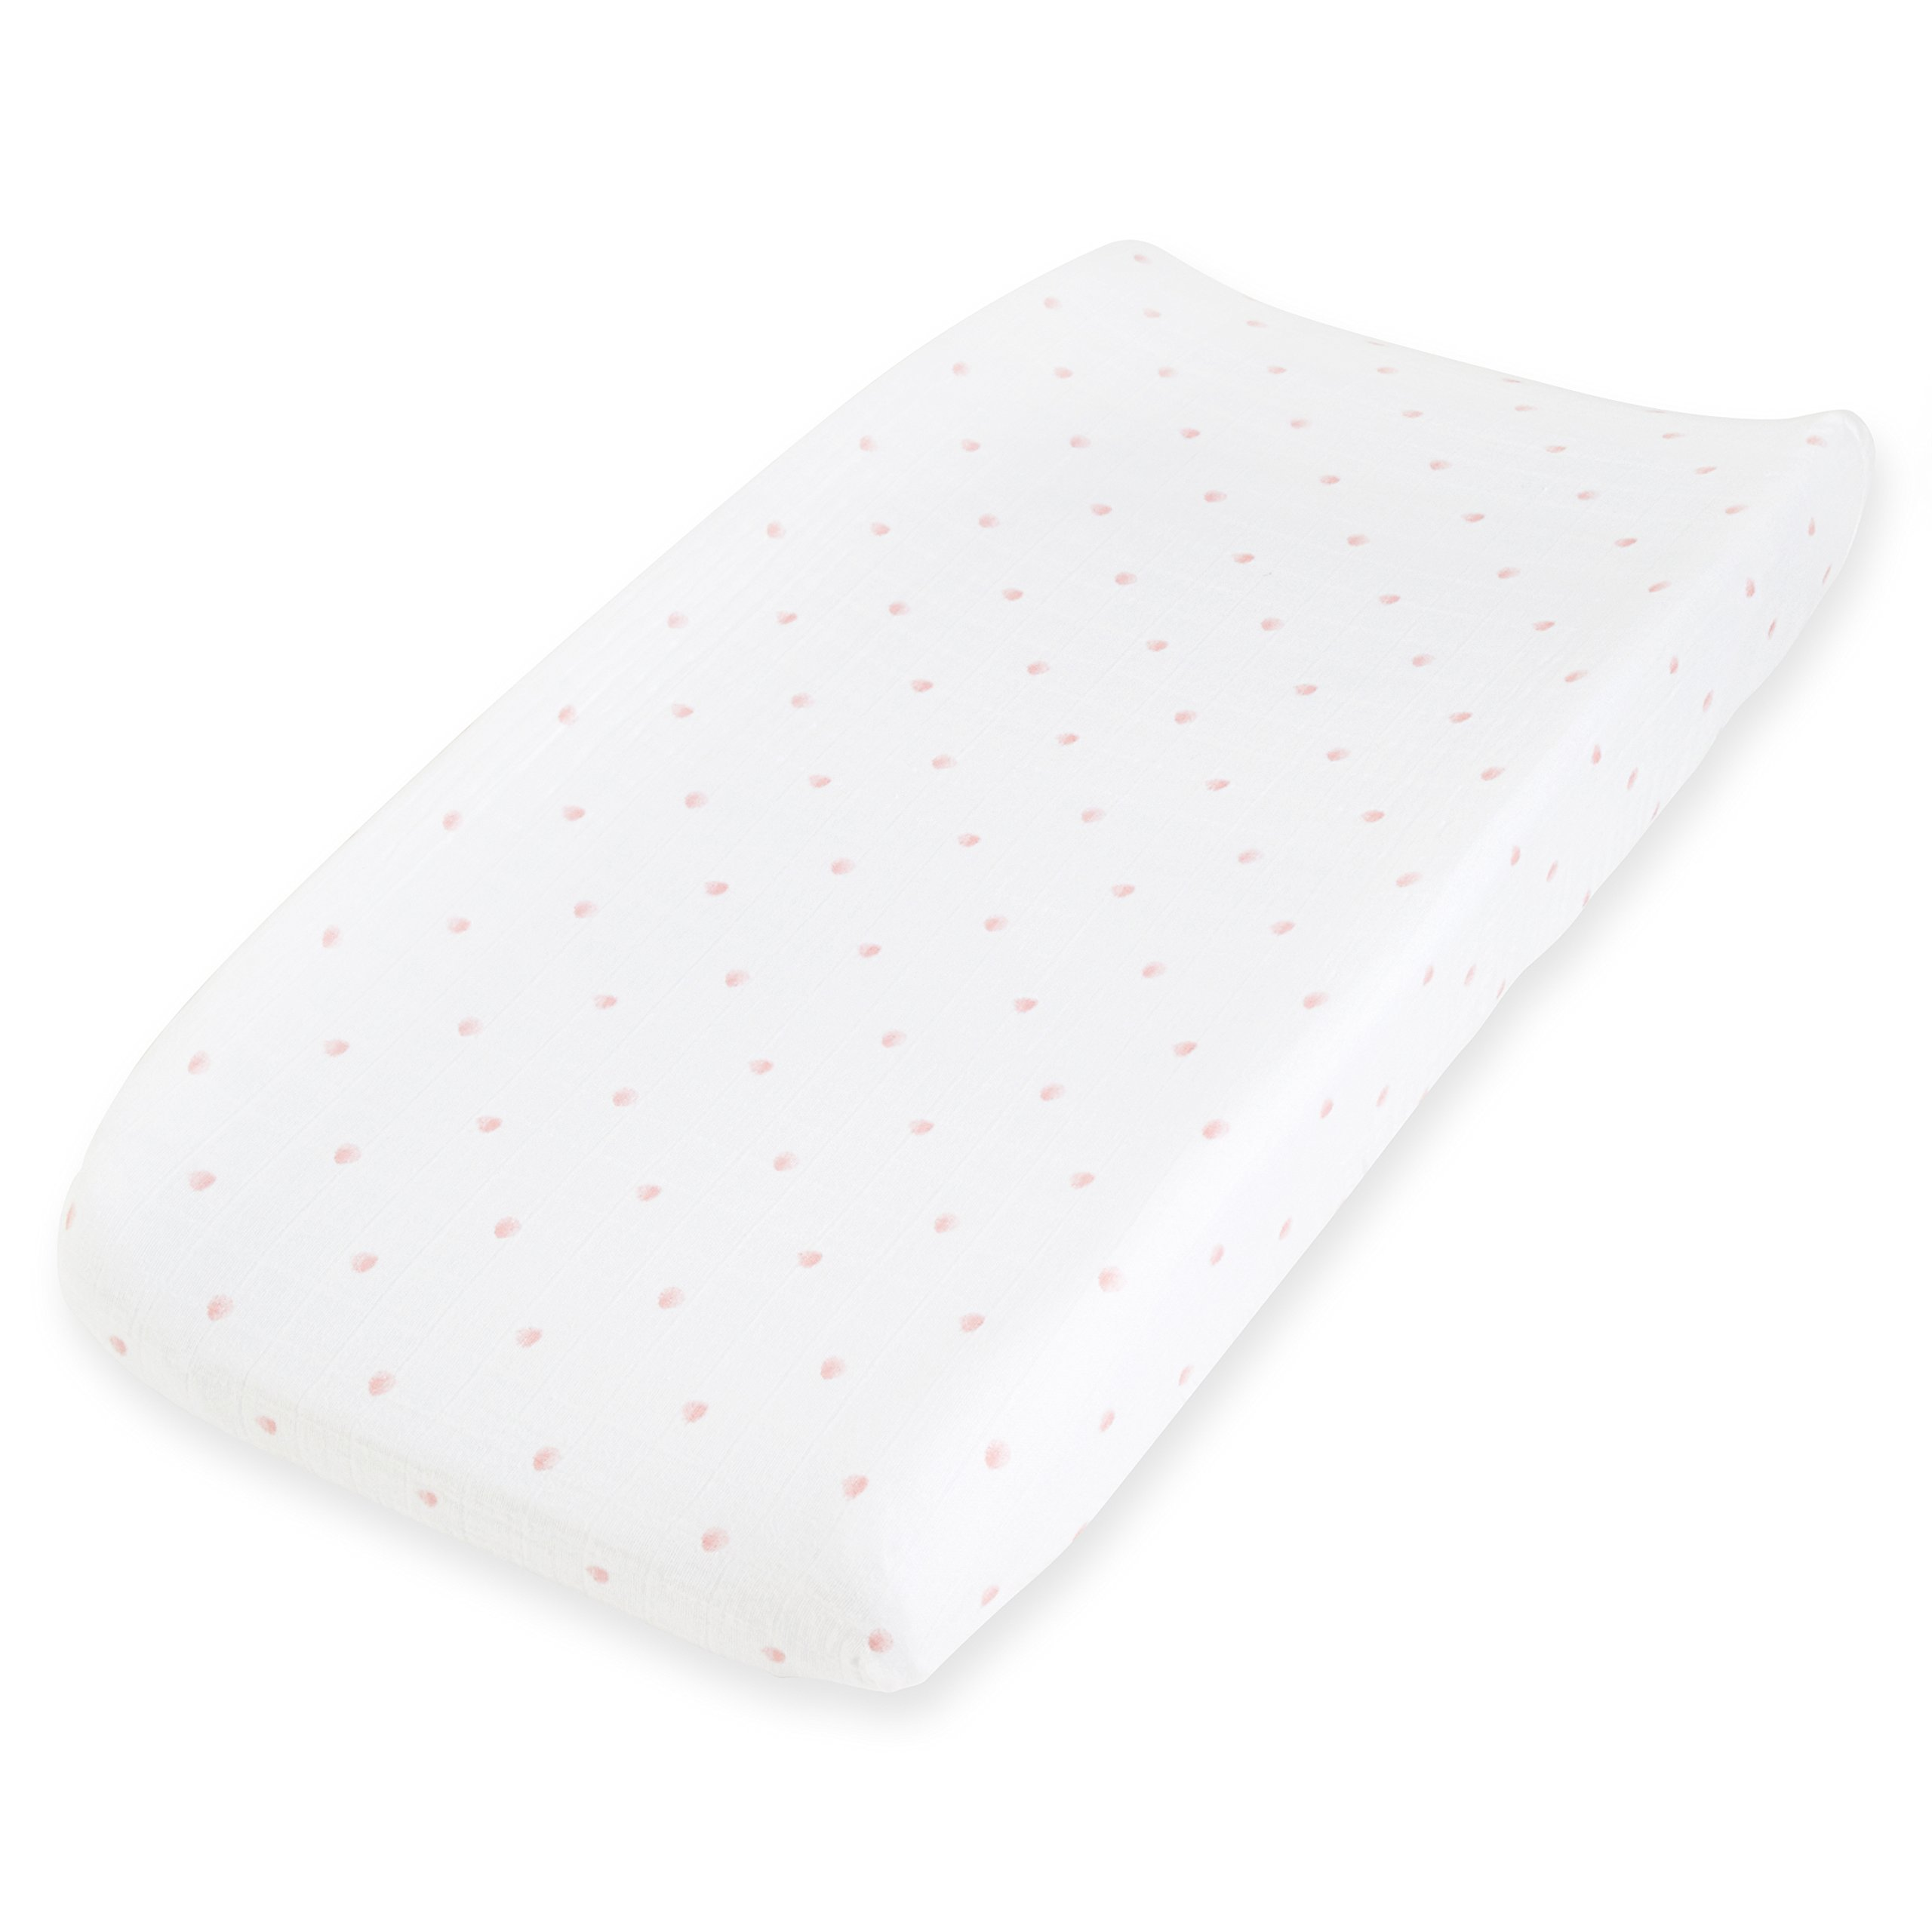 aden + anais Changing Pad Cover, Lovebird - Rose Water Dot